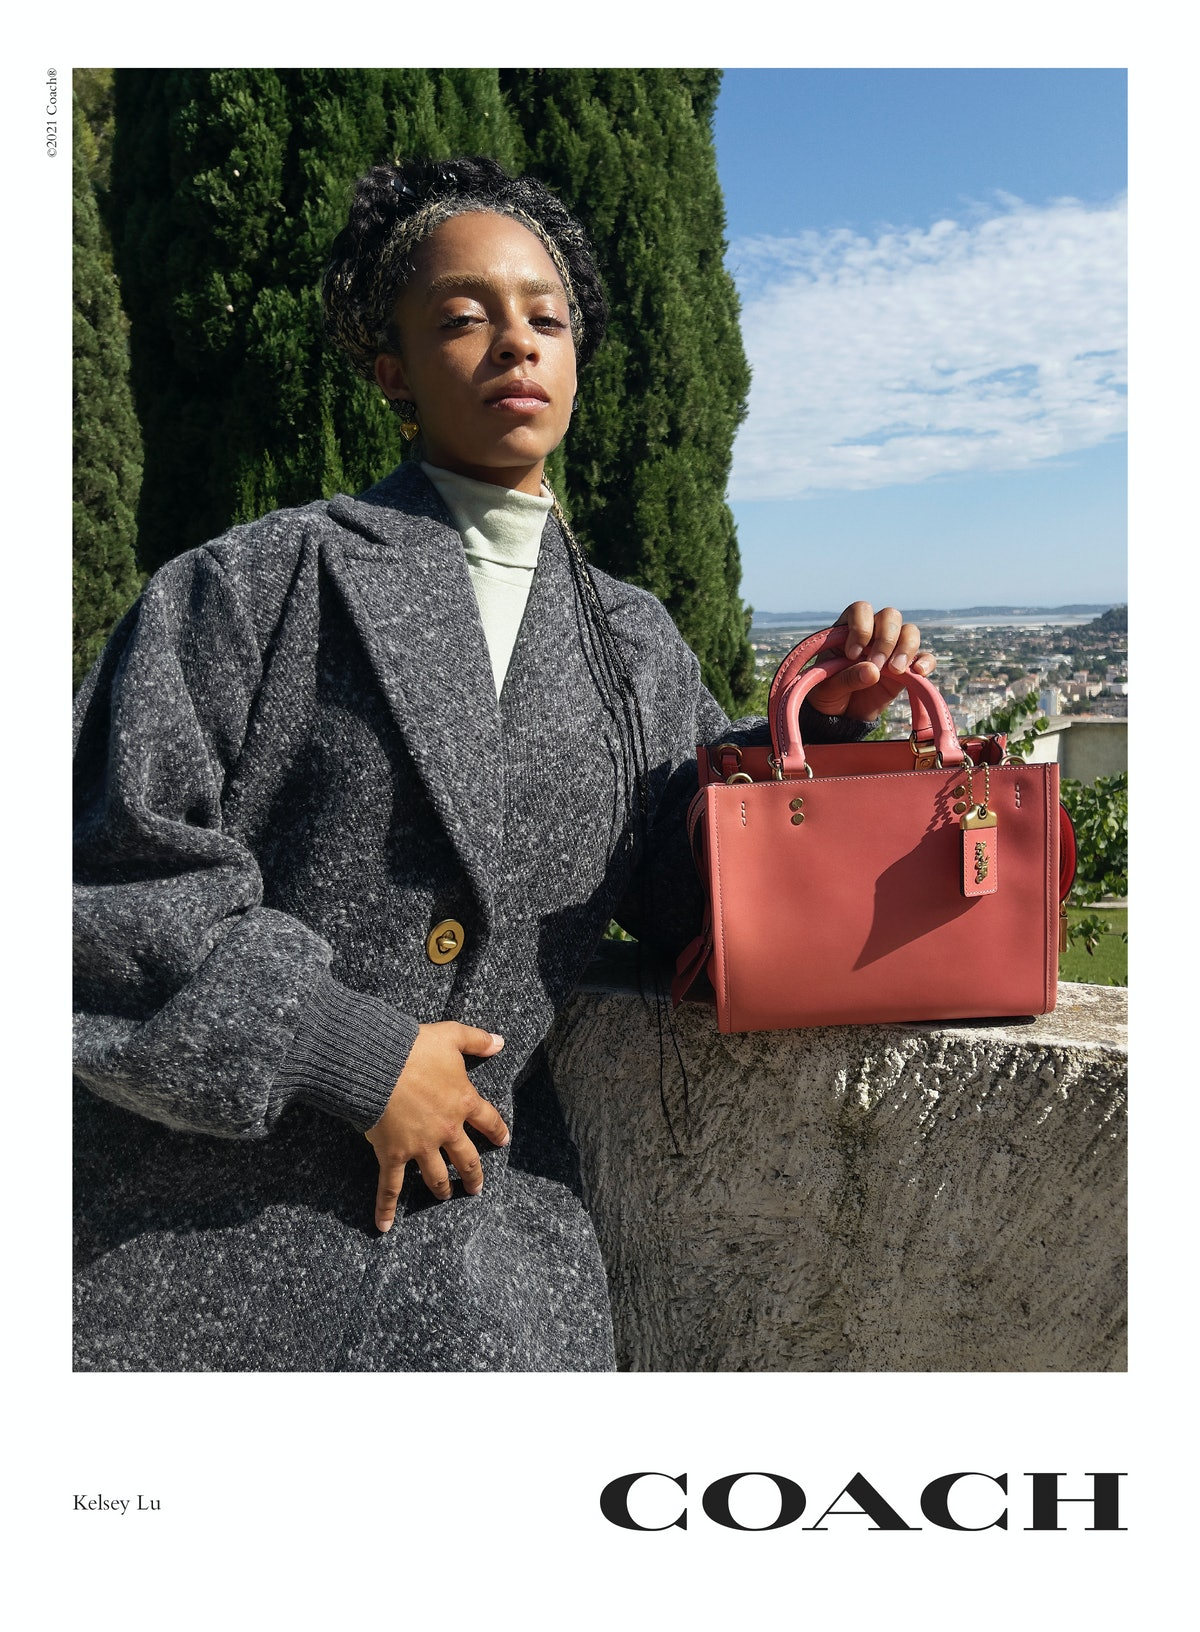 Kelsey Lu stars in Coach's Rogue bag campaign, posing next to red Rogue 25 handbag in Colorblock.